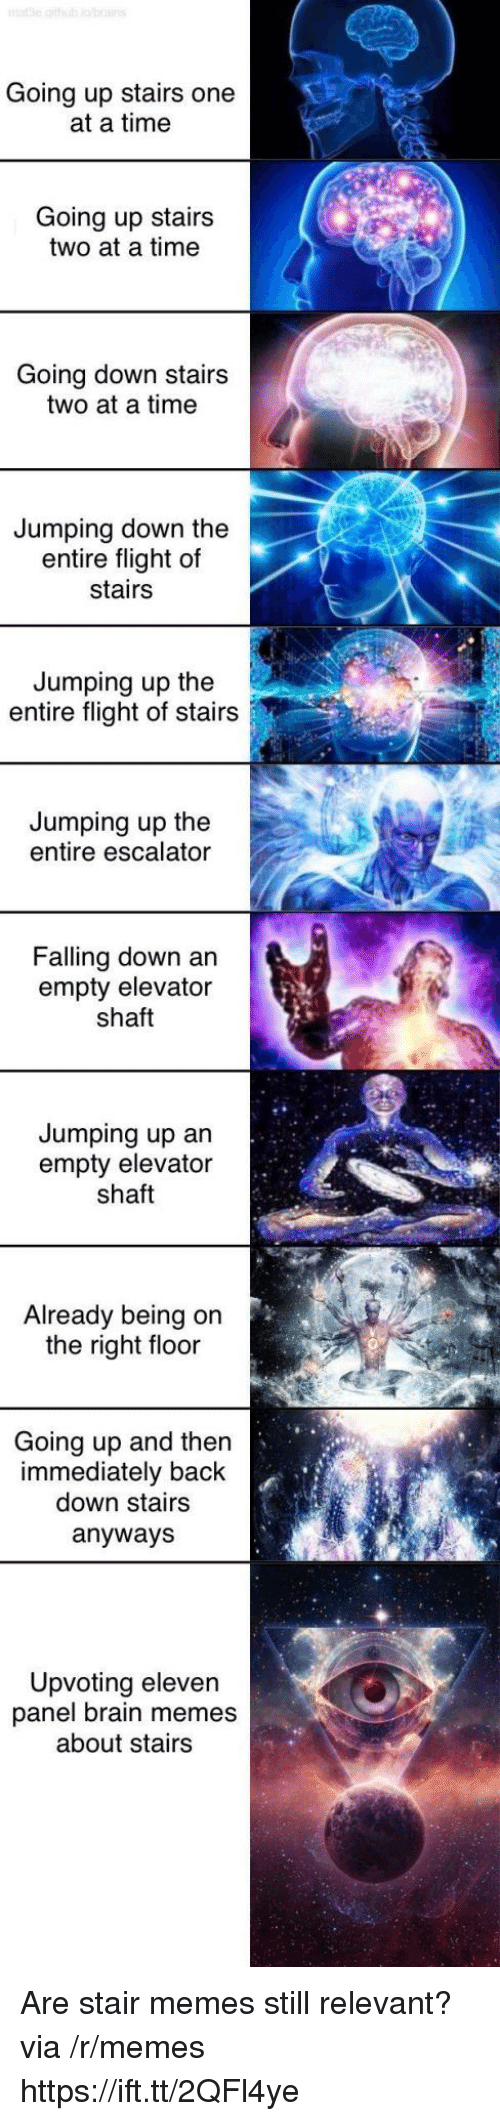 jumping up: Going up stairs one  at a time  Going up stairs  two at a time  Going down stairs  two at a time  Jumping down the  entire flight of  stairs  Jumping up the  entire flight of stairs  Jumping up the  entire escalator  Falling down an  empty elevator  shaft  Jumping up an  empty elevator  shaft  Already being on  the right floor  Going up and then  immediately back  down stairs  anyways  Upvoting eleven  panel brain memes  about stairs Are stair memes still relevant? via /r/memes https://ift.tt/2QFl4ye